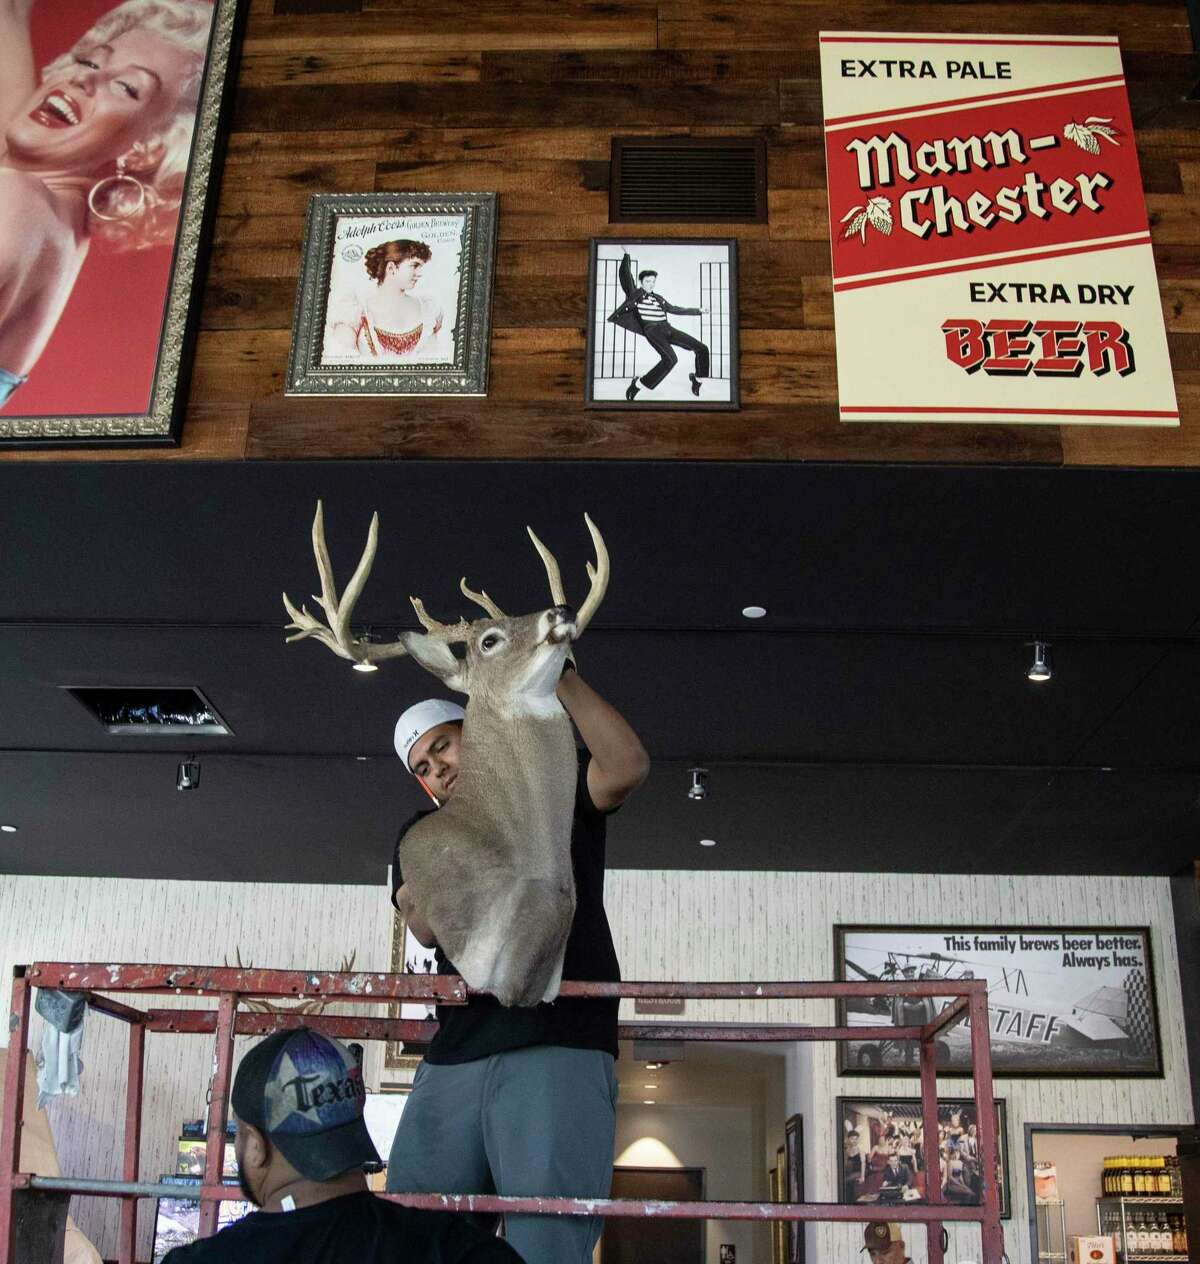 Leo Morales hangs a deer head on the wall at the a second location of Kirby Ice House, at 1015 Gessner Road, Friday, June 12, 2020, in Houston. The original Kirby Ice House is a bar in Upper Kirby known for its huge yard and laid back vibe. The second location is across the Katy Freeway from Memorial City Mall.